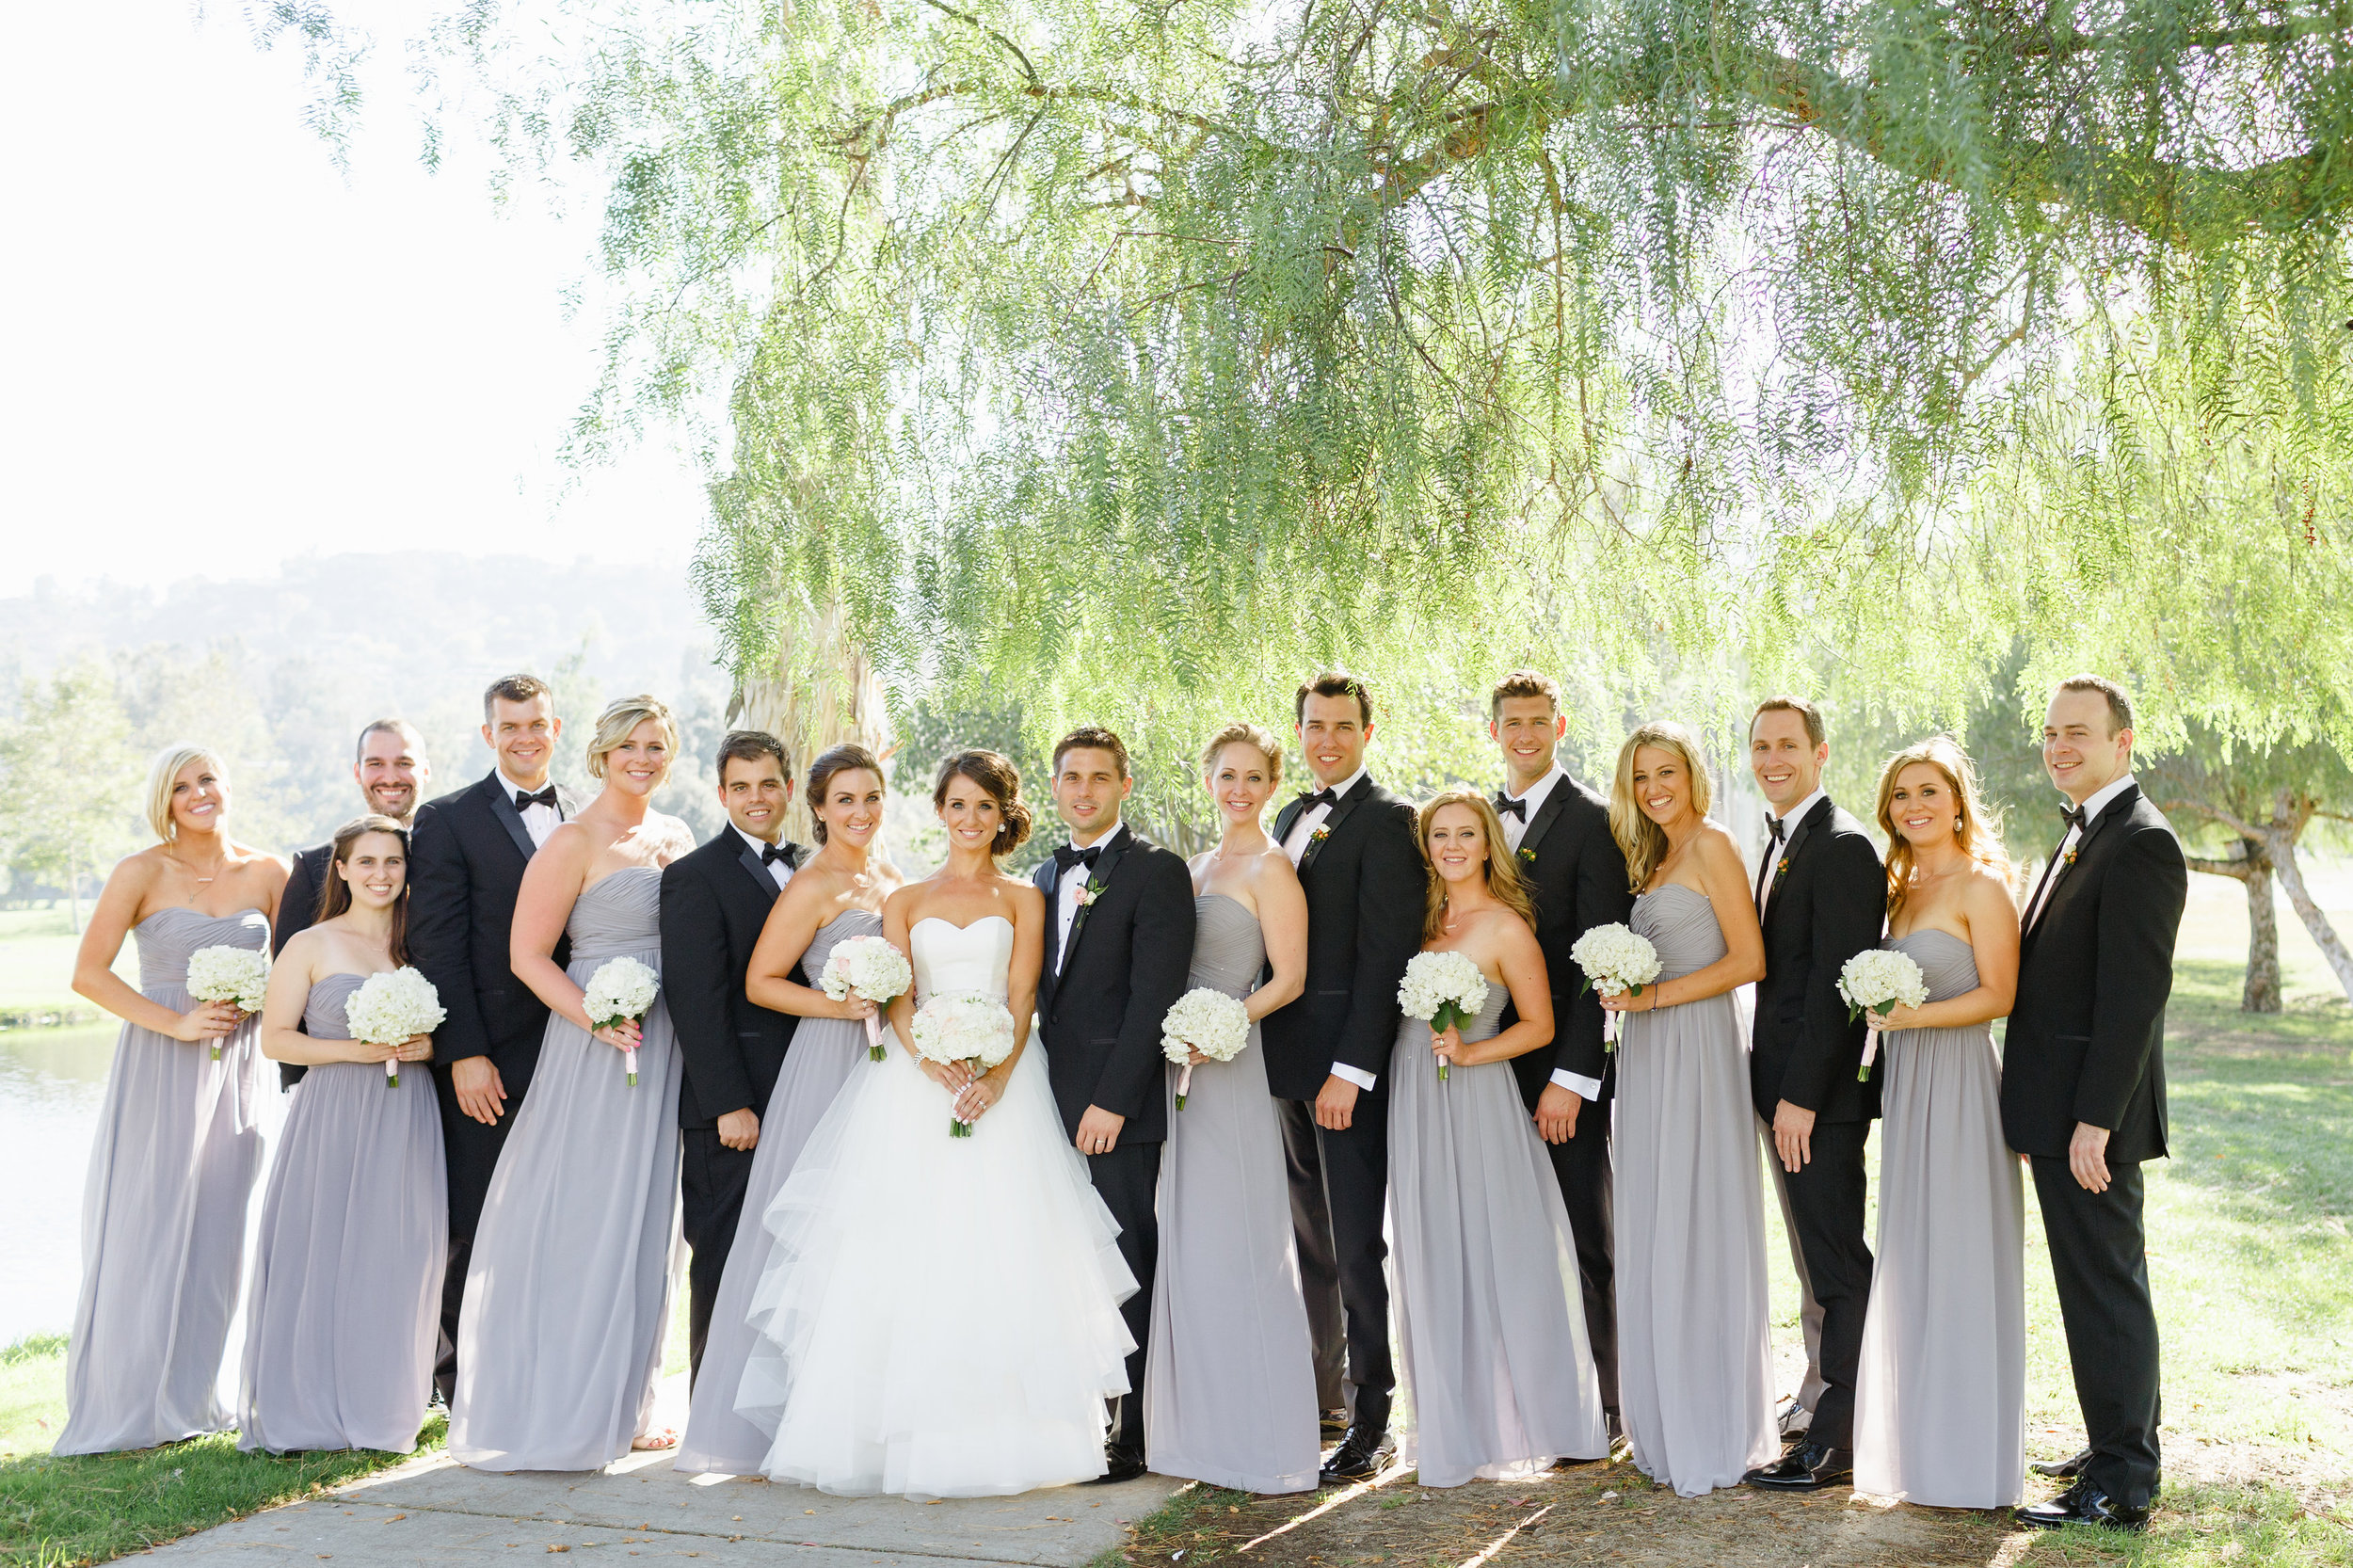 DaveandAmyWedding-GroupPortraits-90.jpg